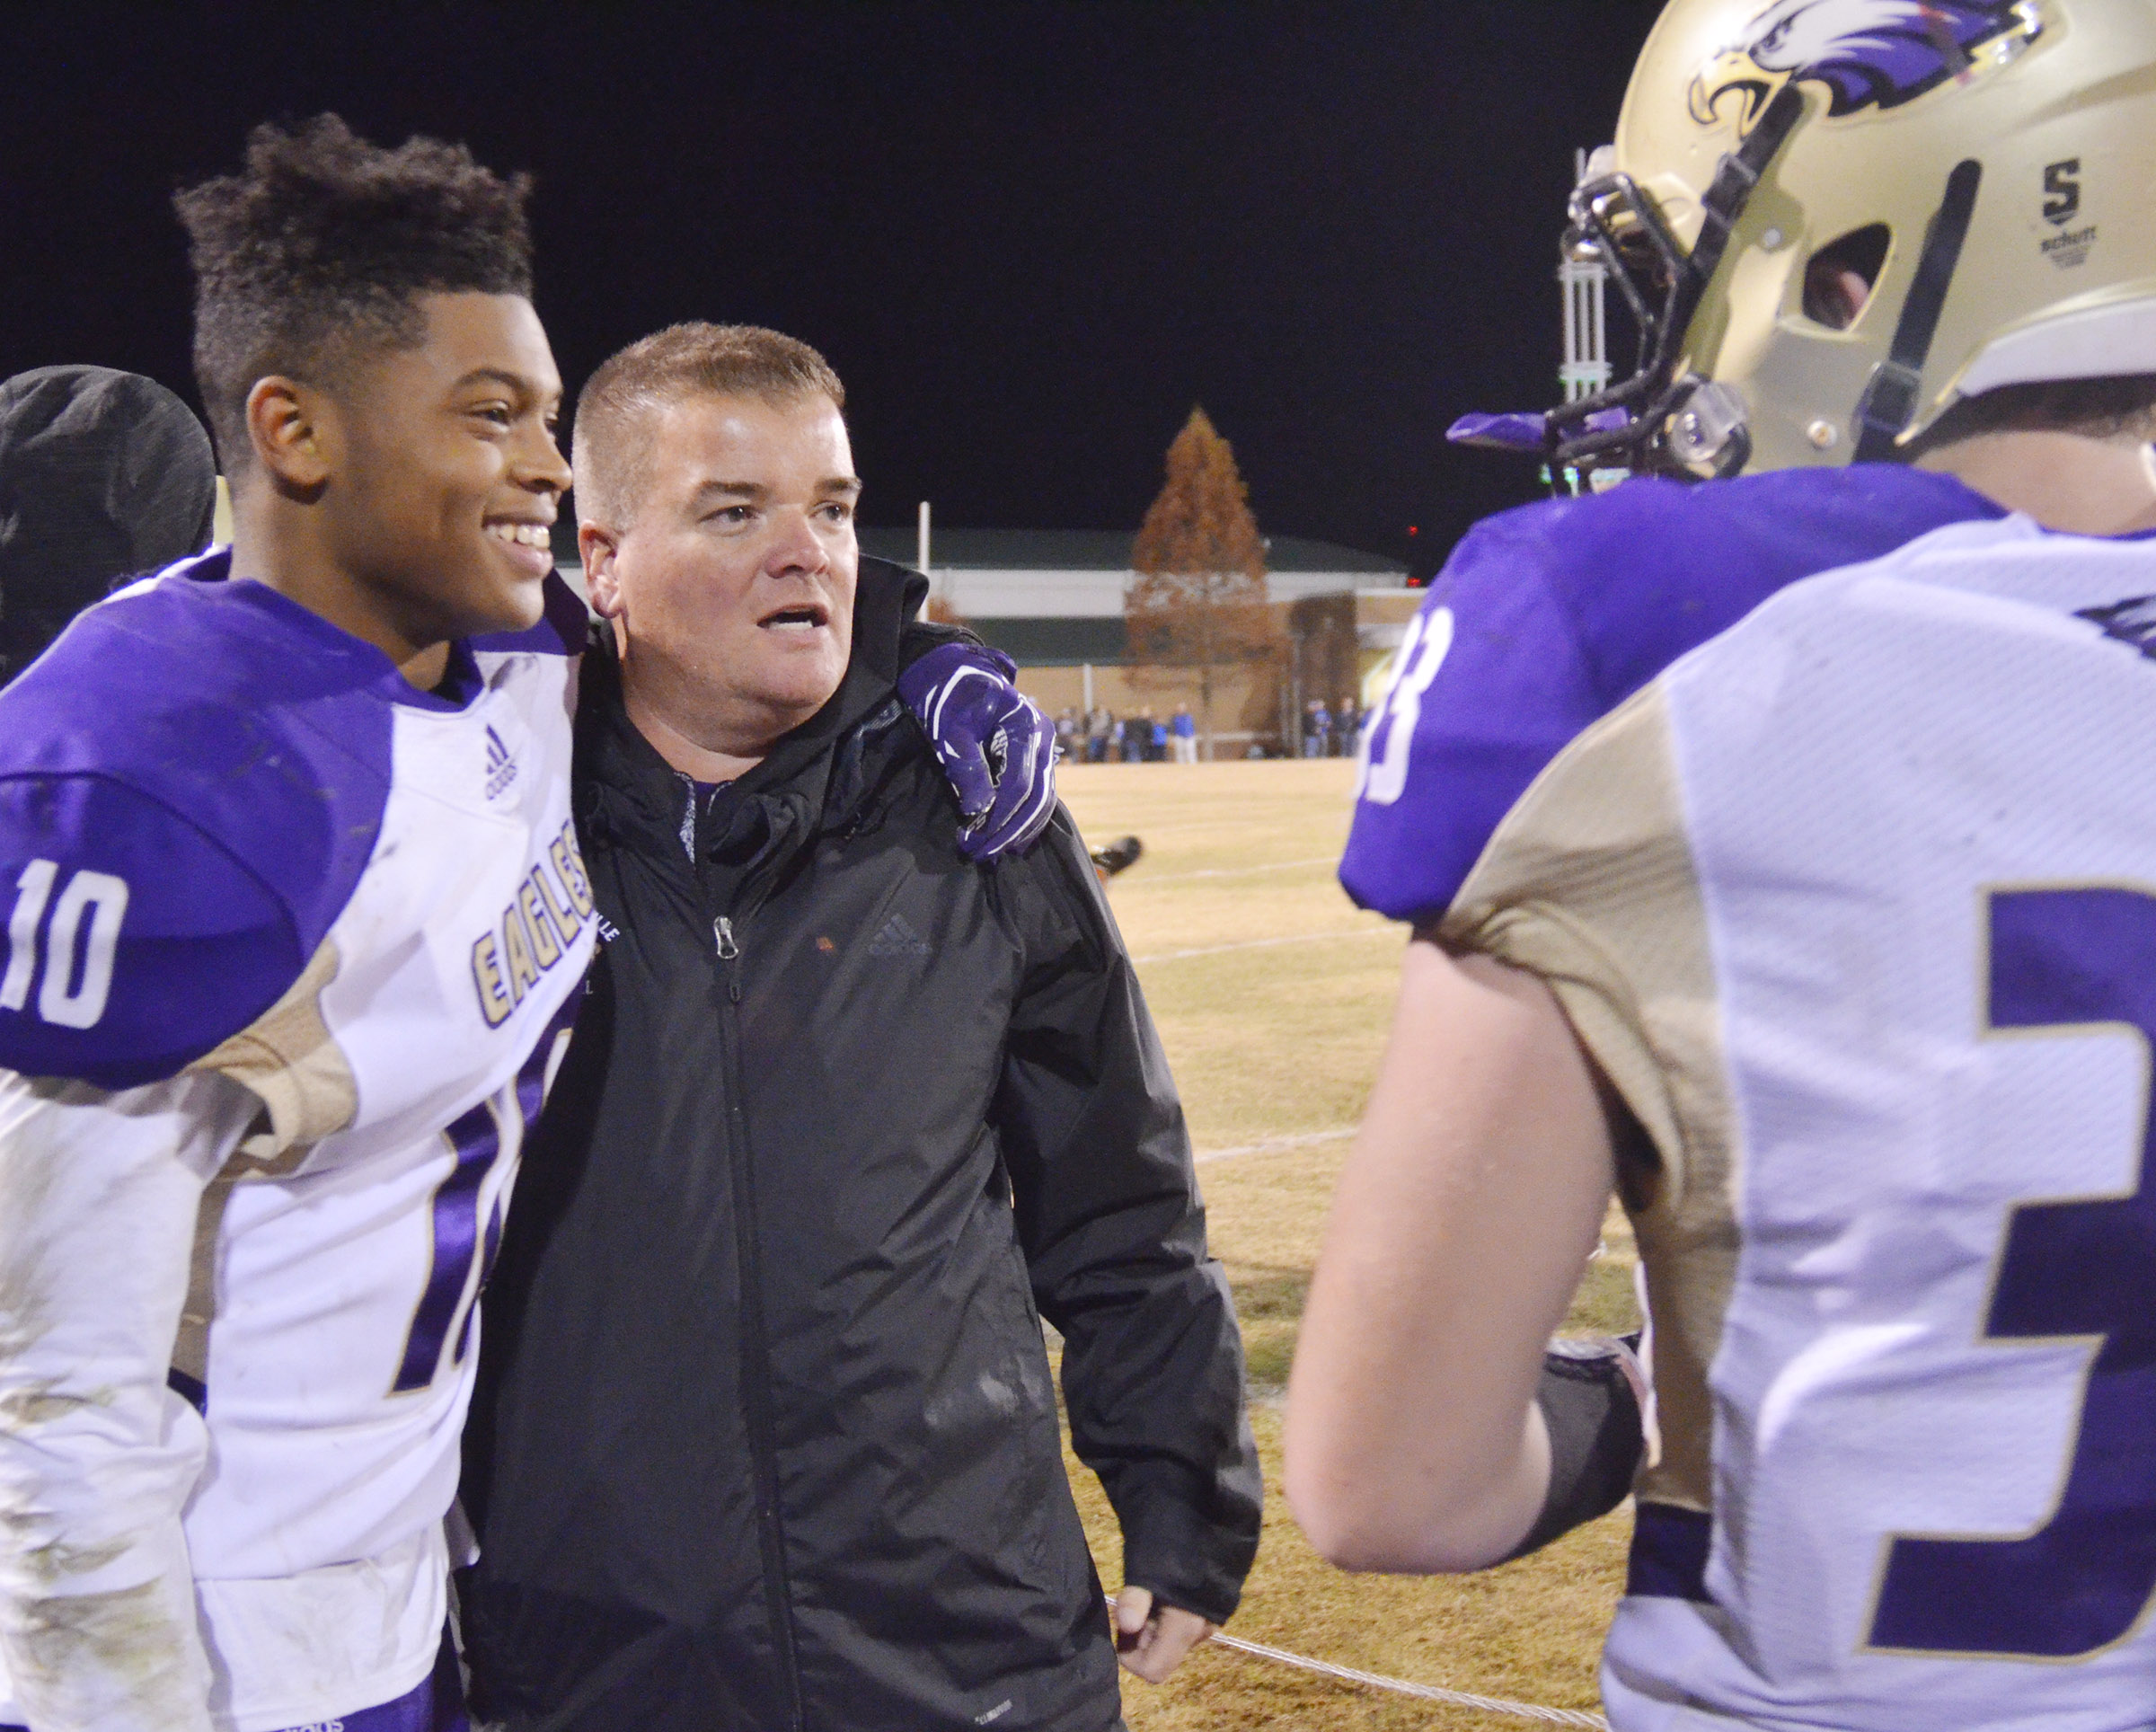 For the second year in a row, CHS head football coach Dale Estes was named Coach of the Year for Class A District 2. CHS senior Devonte Cubit was named Player of the Year.